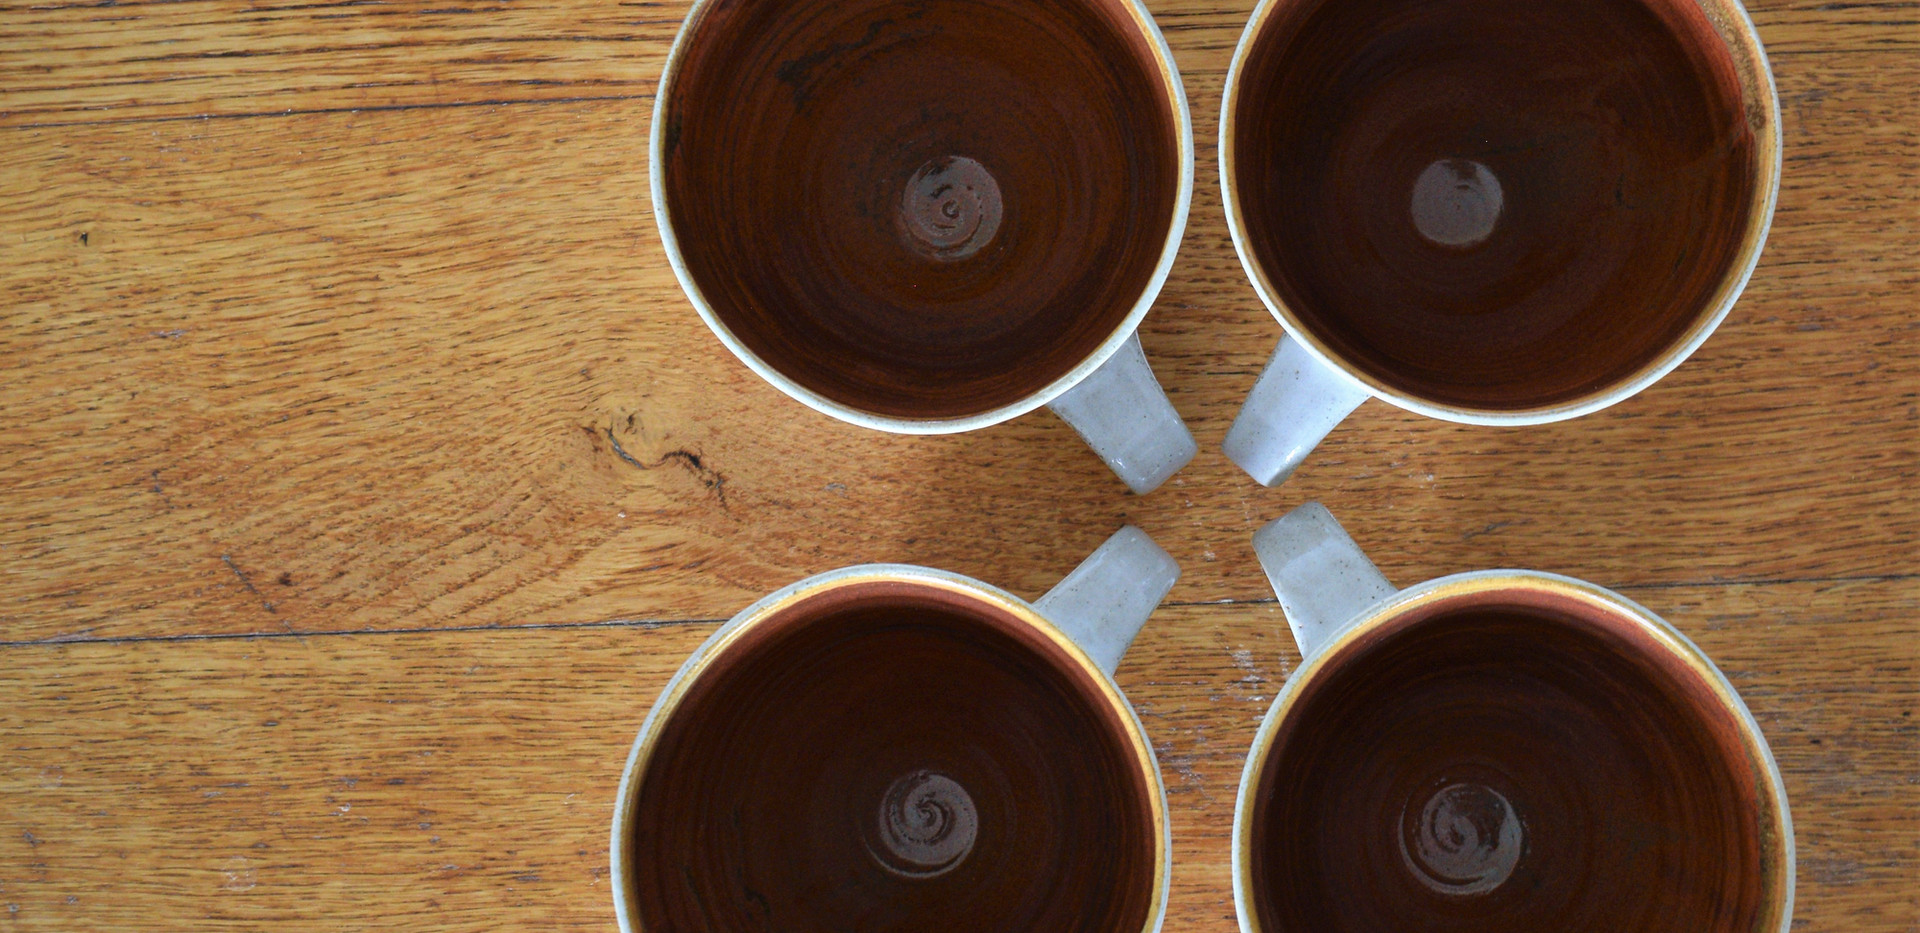 Mugs from above